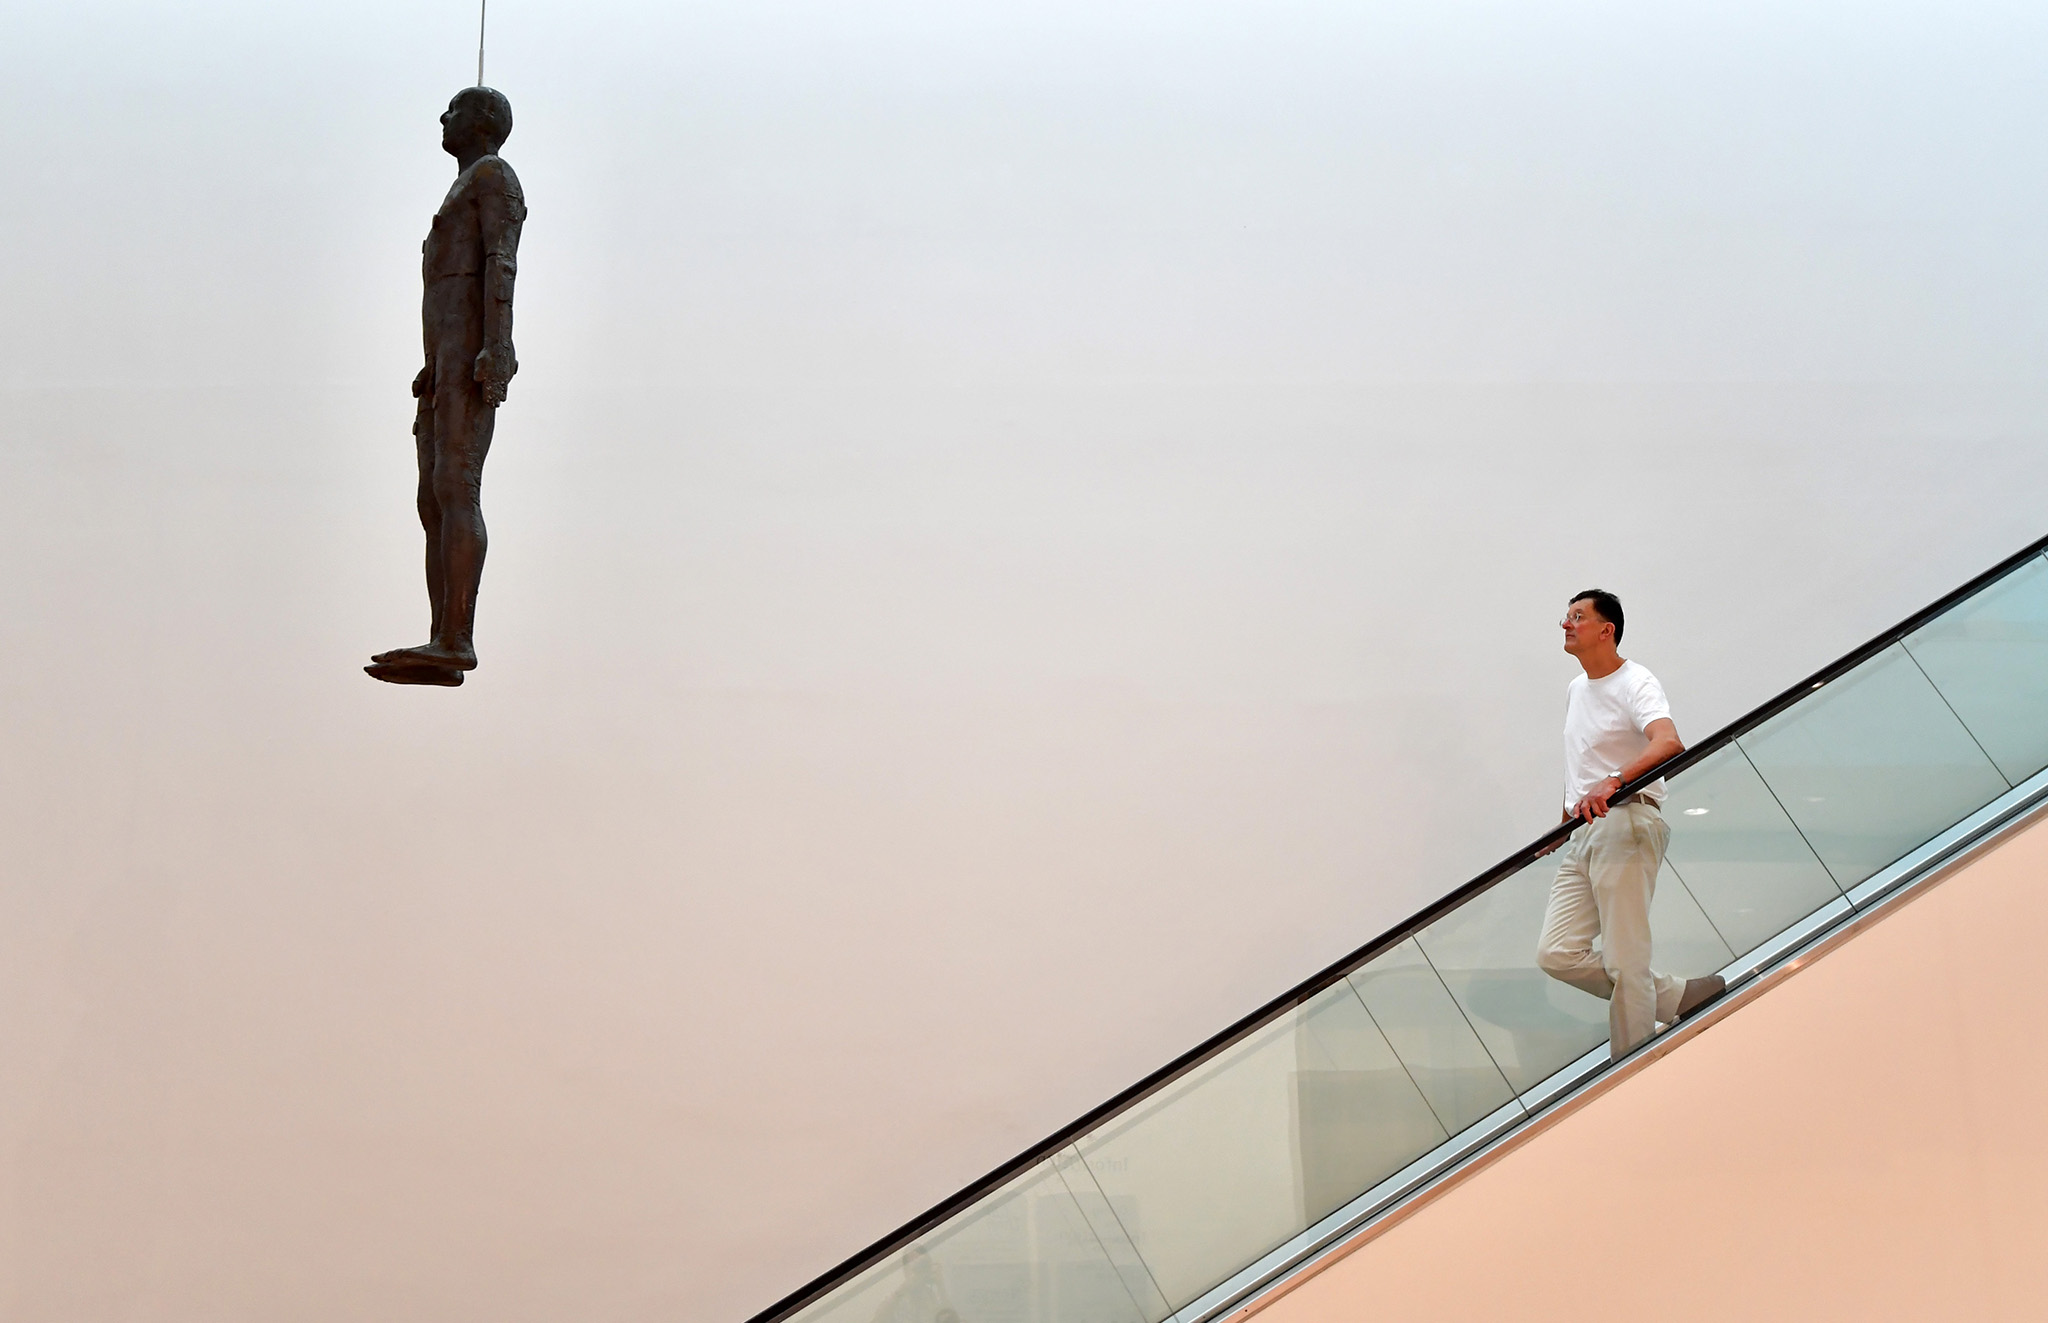 British artist Anthony Gormley poses for a photograph next to his artwork entitled 'Object, 199', a life-size cast-iron sculpture cast from the artist's body and hung from the ceiling of the National Portrait Gallery, during a press preview on September 7, 2016 in London, England. The work is accompanied on October 5 by 'Fall, 1999', a selection of drawings also by Mr Gormley.  (Photo by Carl Court/Getty Images)